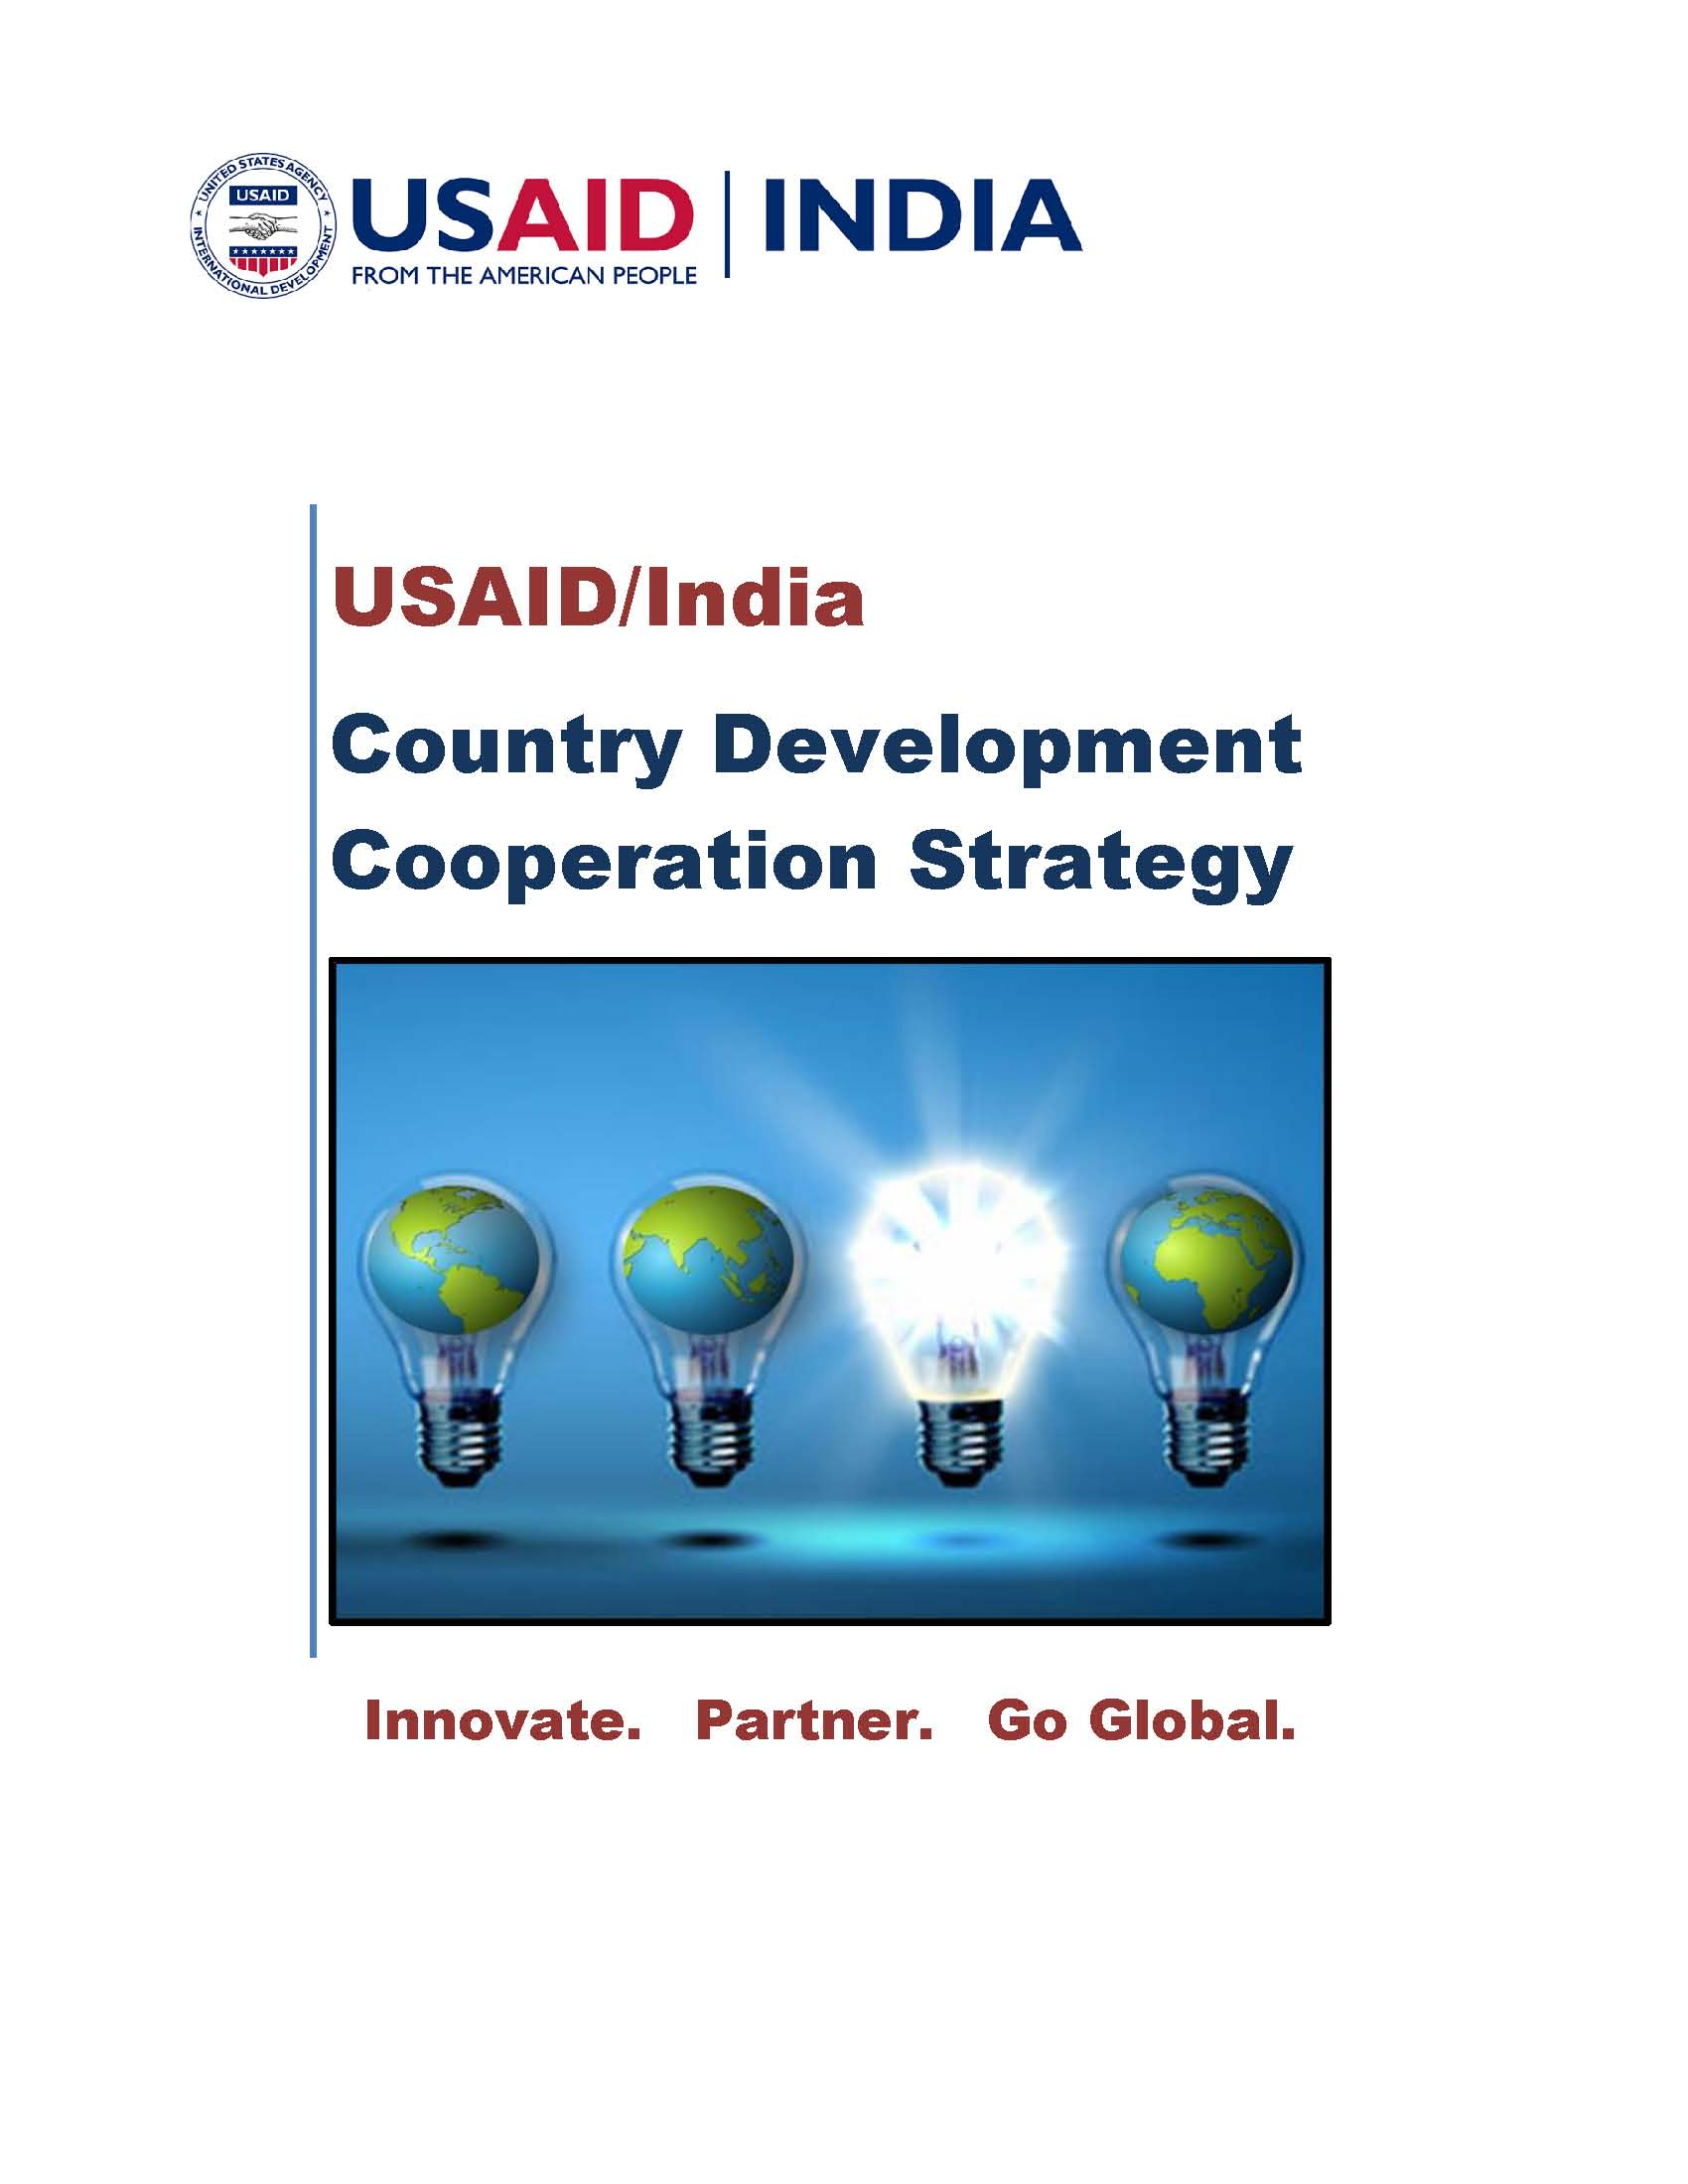 USAID/India Country Development Cooperation Strategy .